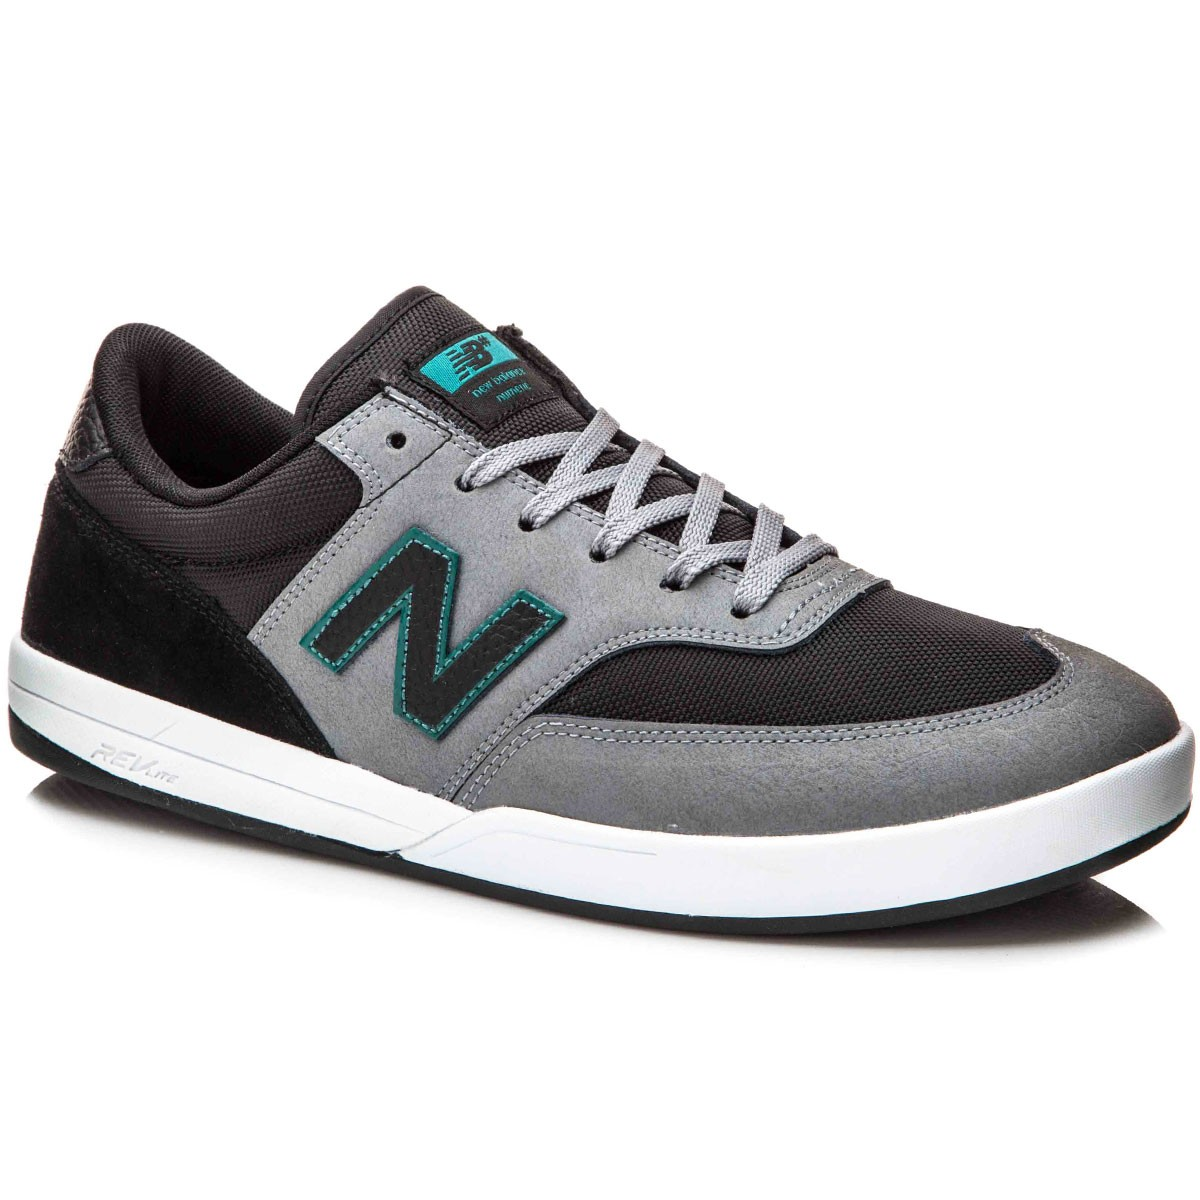 fn8iyacb Authentic new balance factory store allston ...